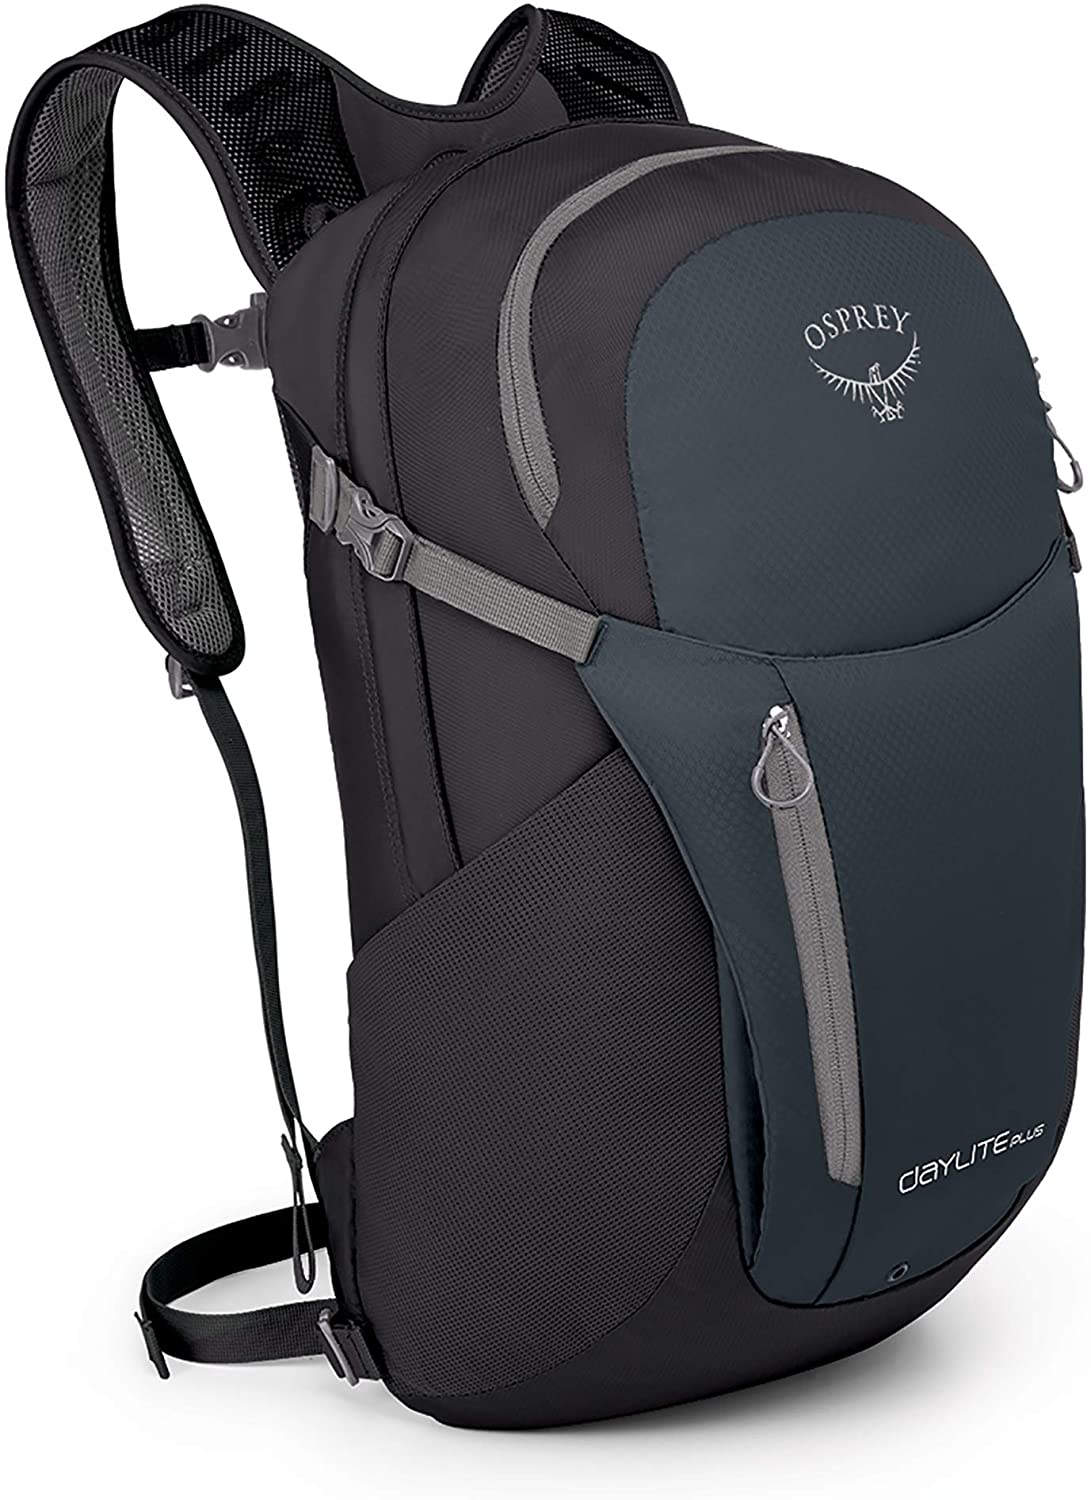 Osprey Packs Daylite Plus Daypack, Black: Sports & Outdoors